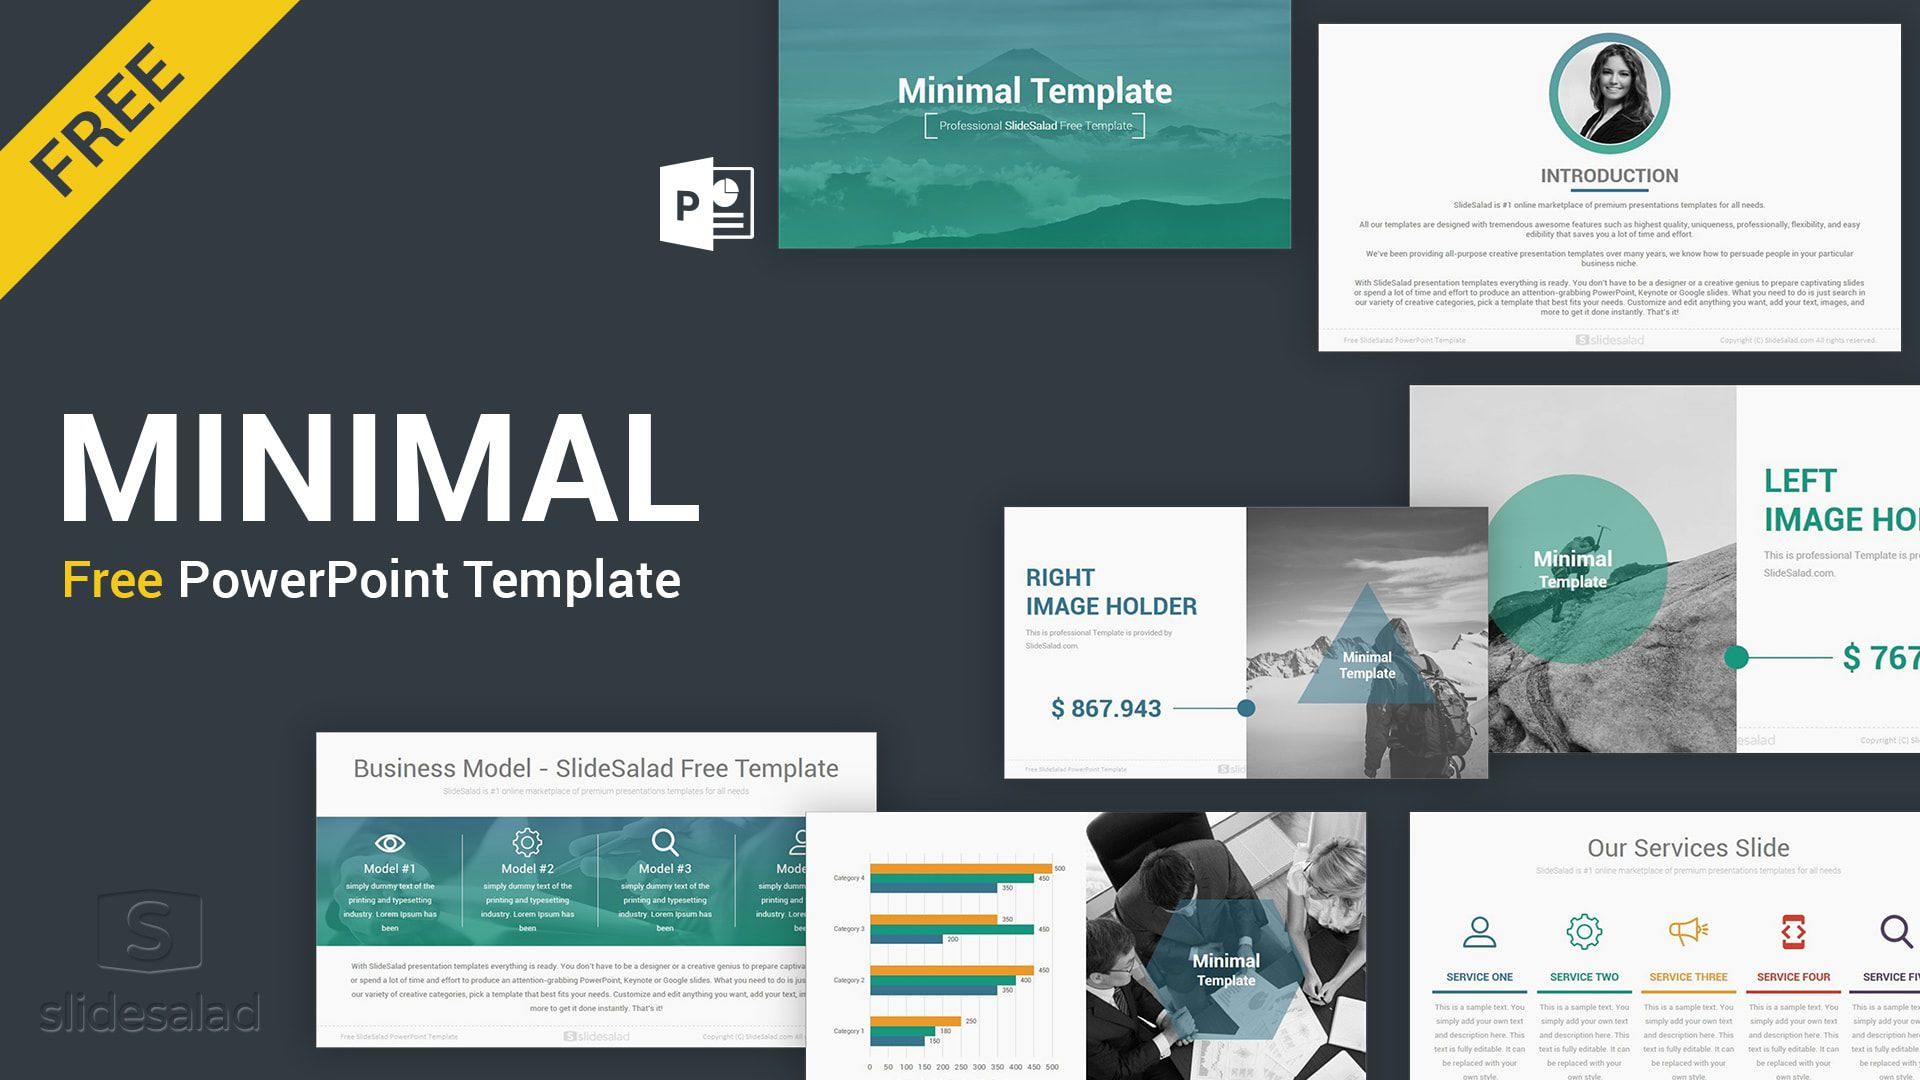 008 Fearsome Free Powerpoint Presentation Template Photo  Templates 22 Slide For The Perfect Busines Strategy Download EngineeringFull